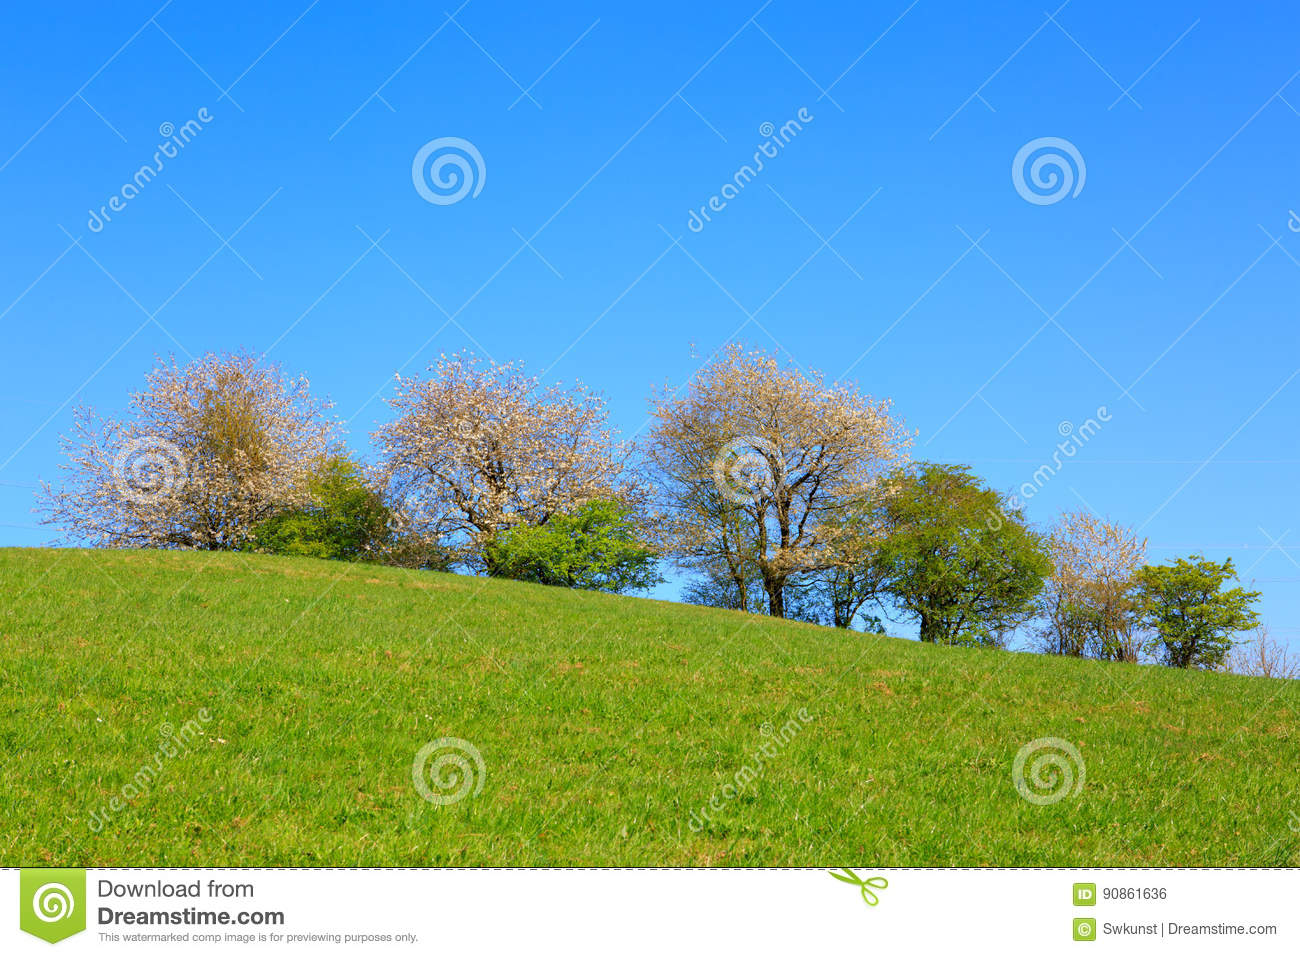 Flowering trees on meadow and blue sky stock photo image of farm download flowering trees on meadow and blue sky stock photo image of farm izmirmasajfo